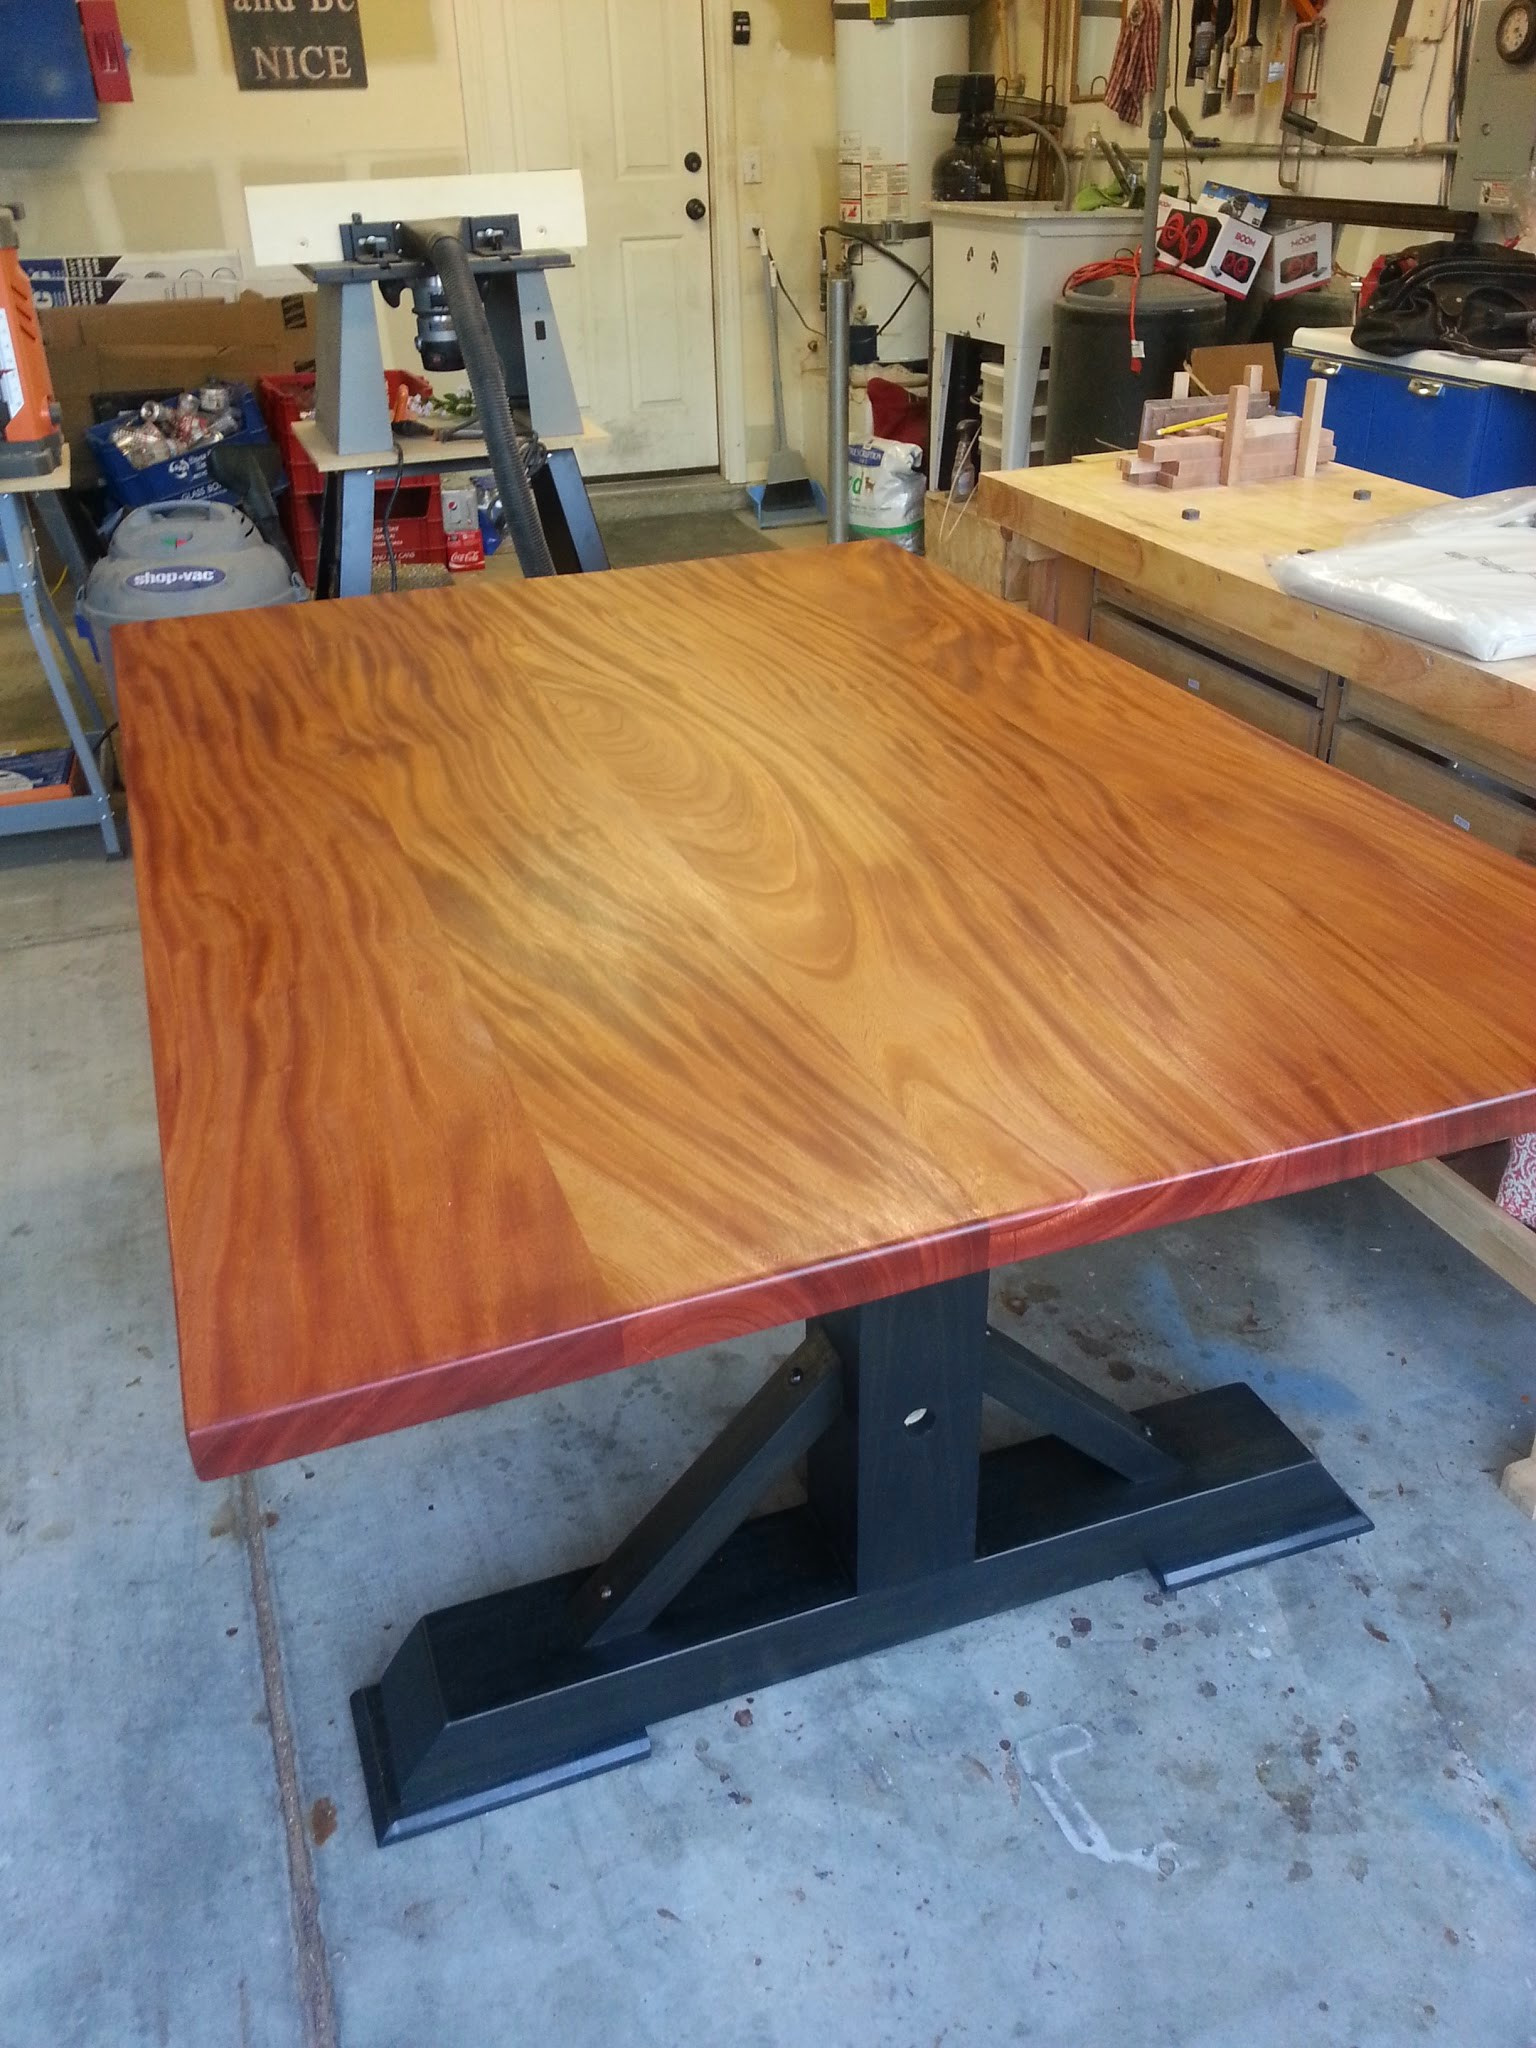 hardwood floor repair las vegas of woodworking classes in las vegas throughout this course is for anyone who wants to learn how to design build and assemble a basic table